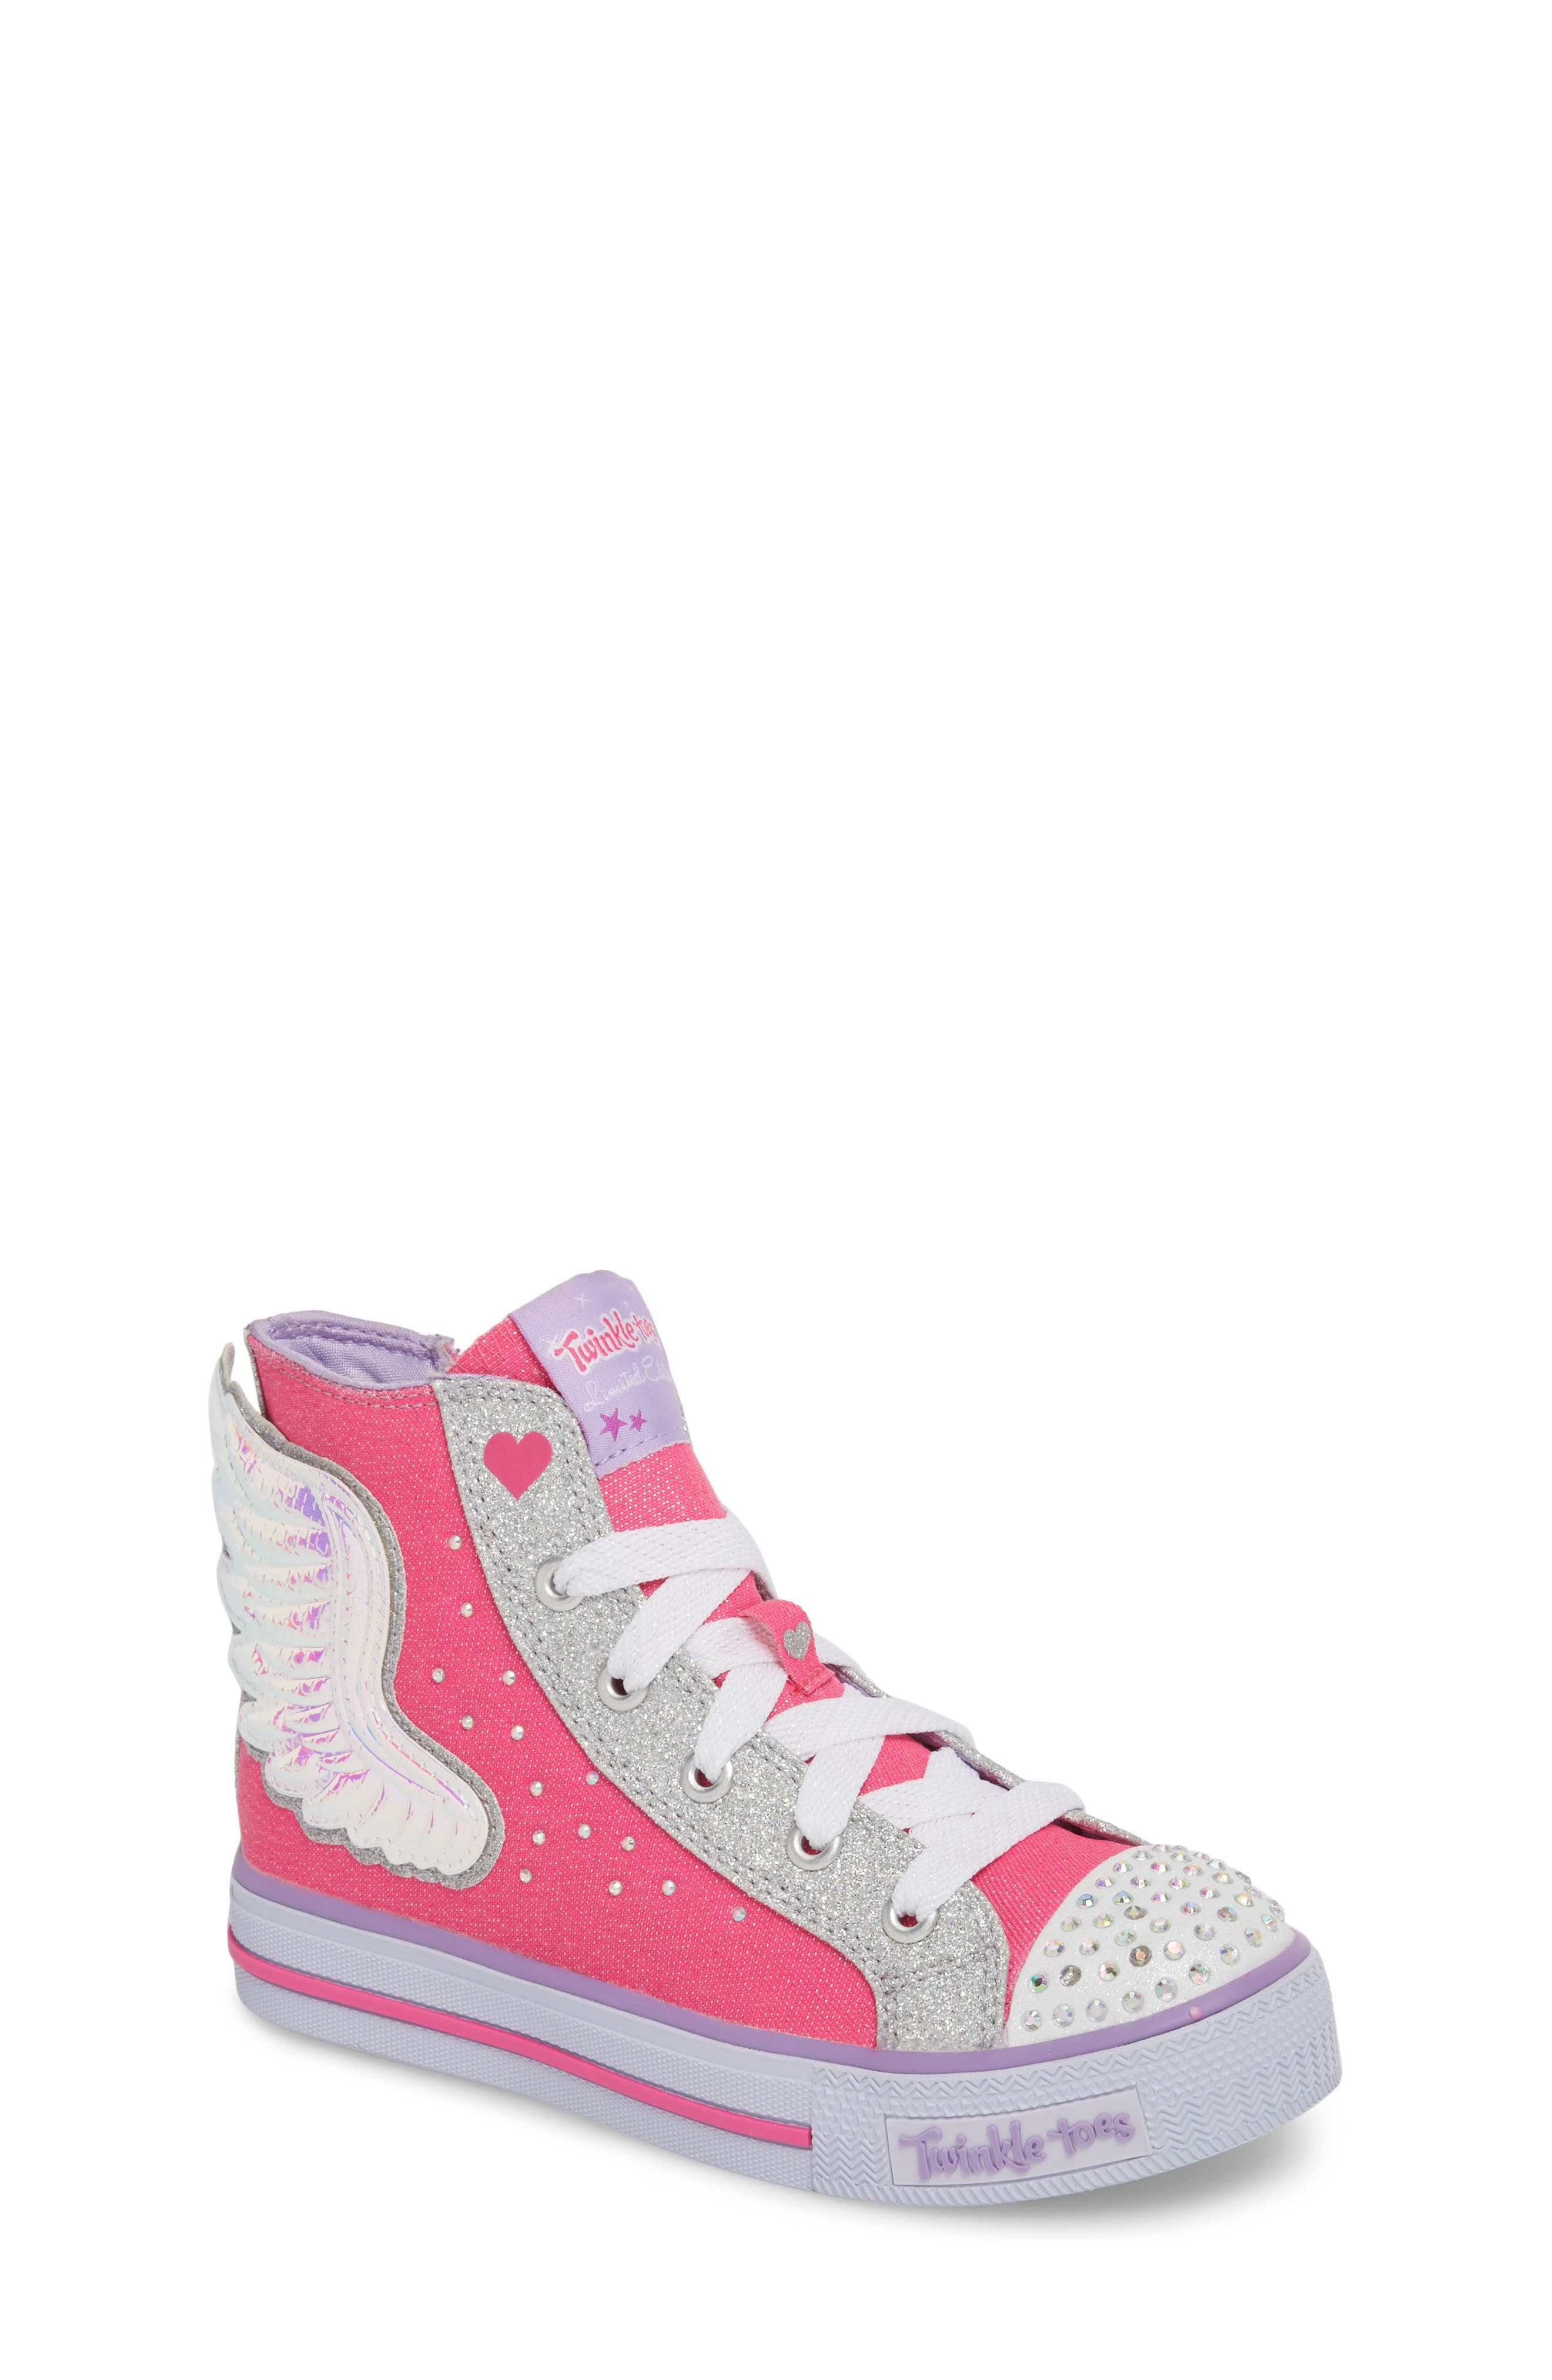 SKECHERS Twinkle Toes Shuffles Wonder Wings Light-Up High Top Sneaker (Toddler & Little Kid)